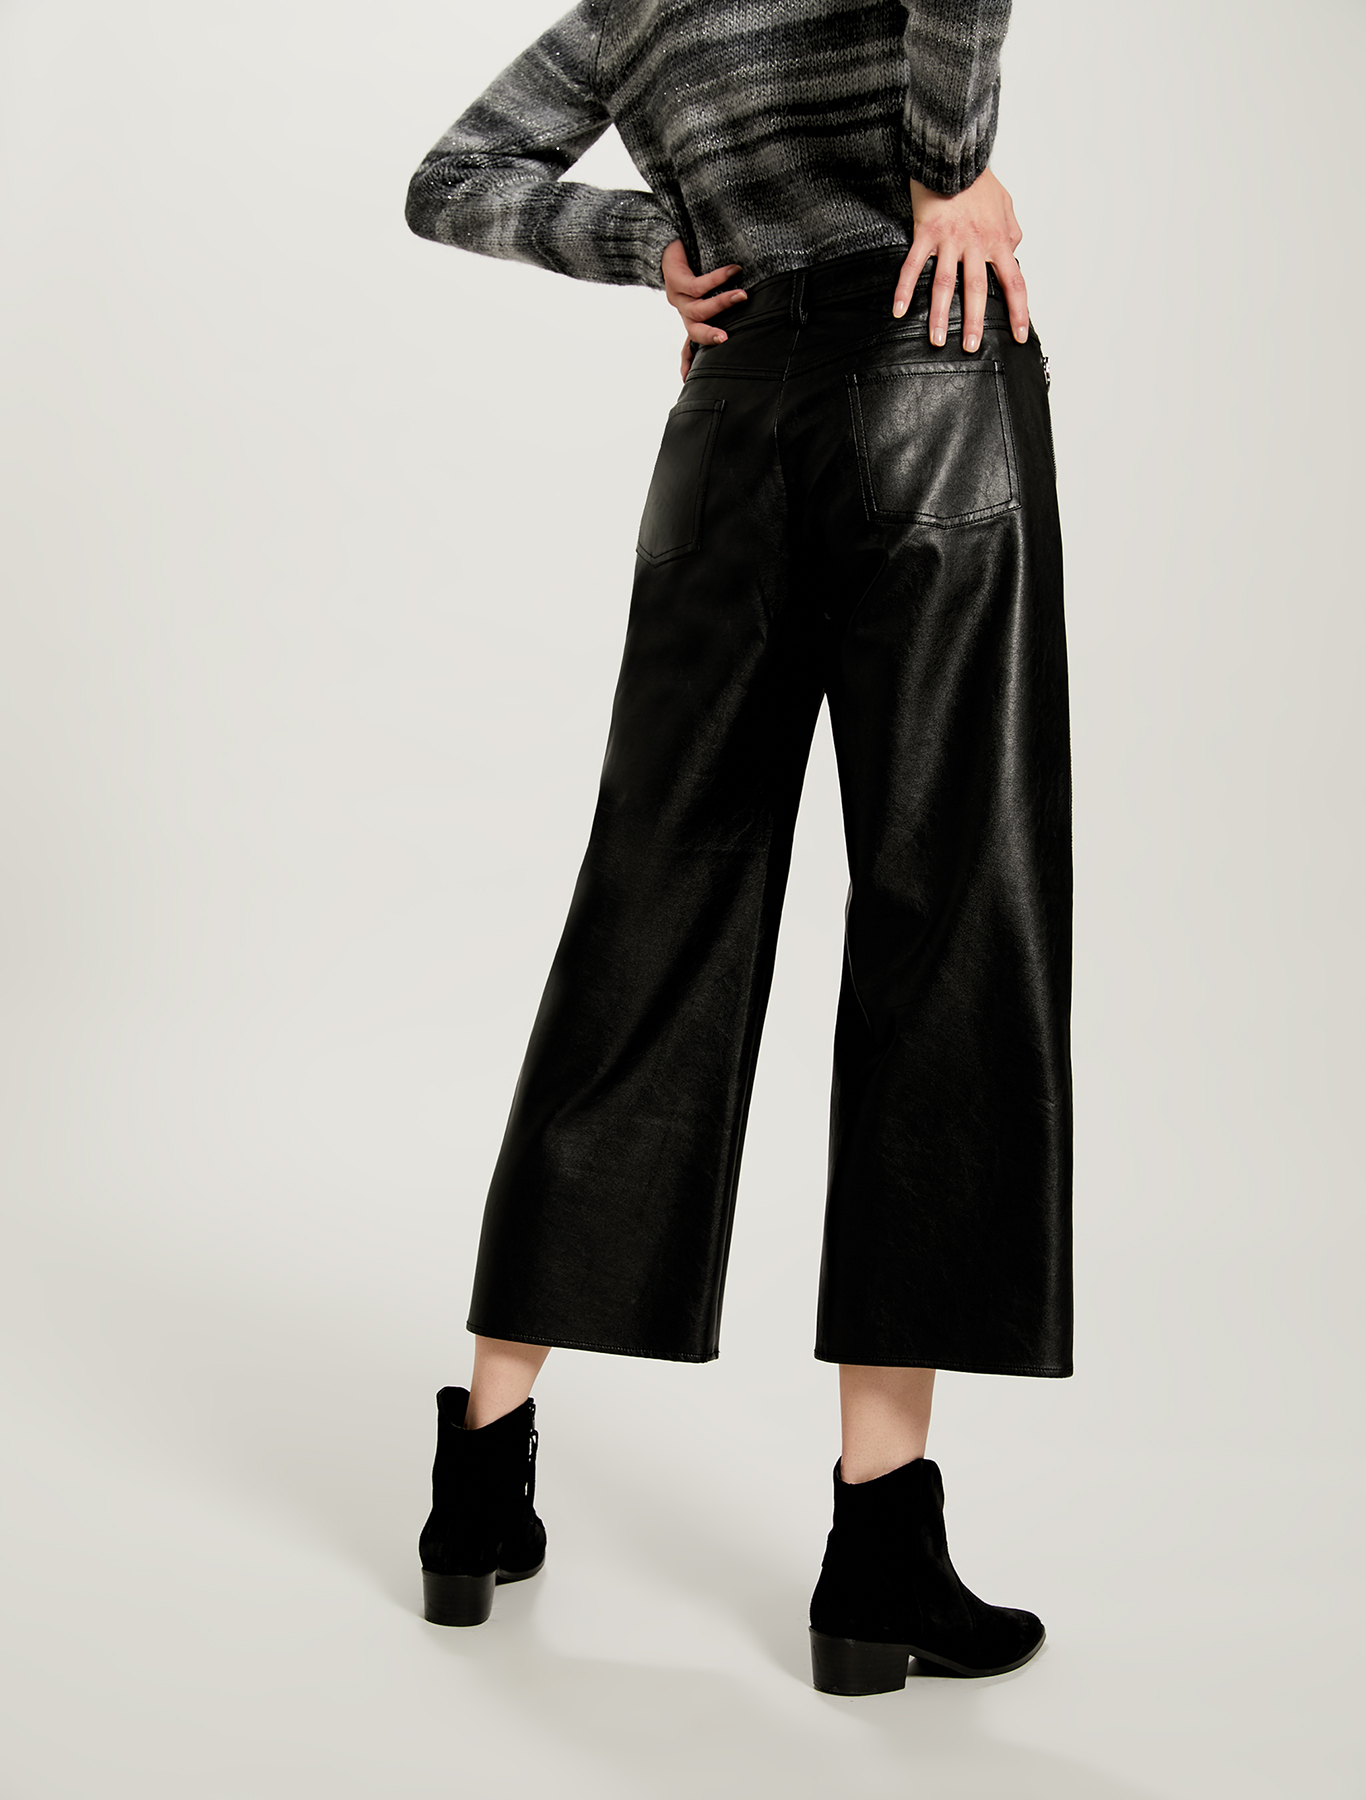 Coated jersey trousers - black - pennyblack